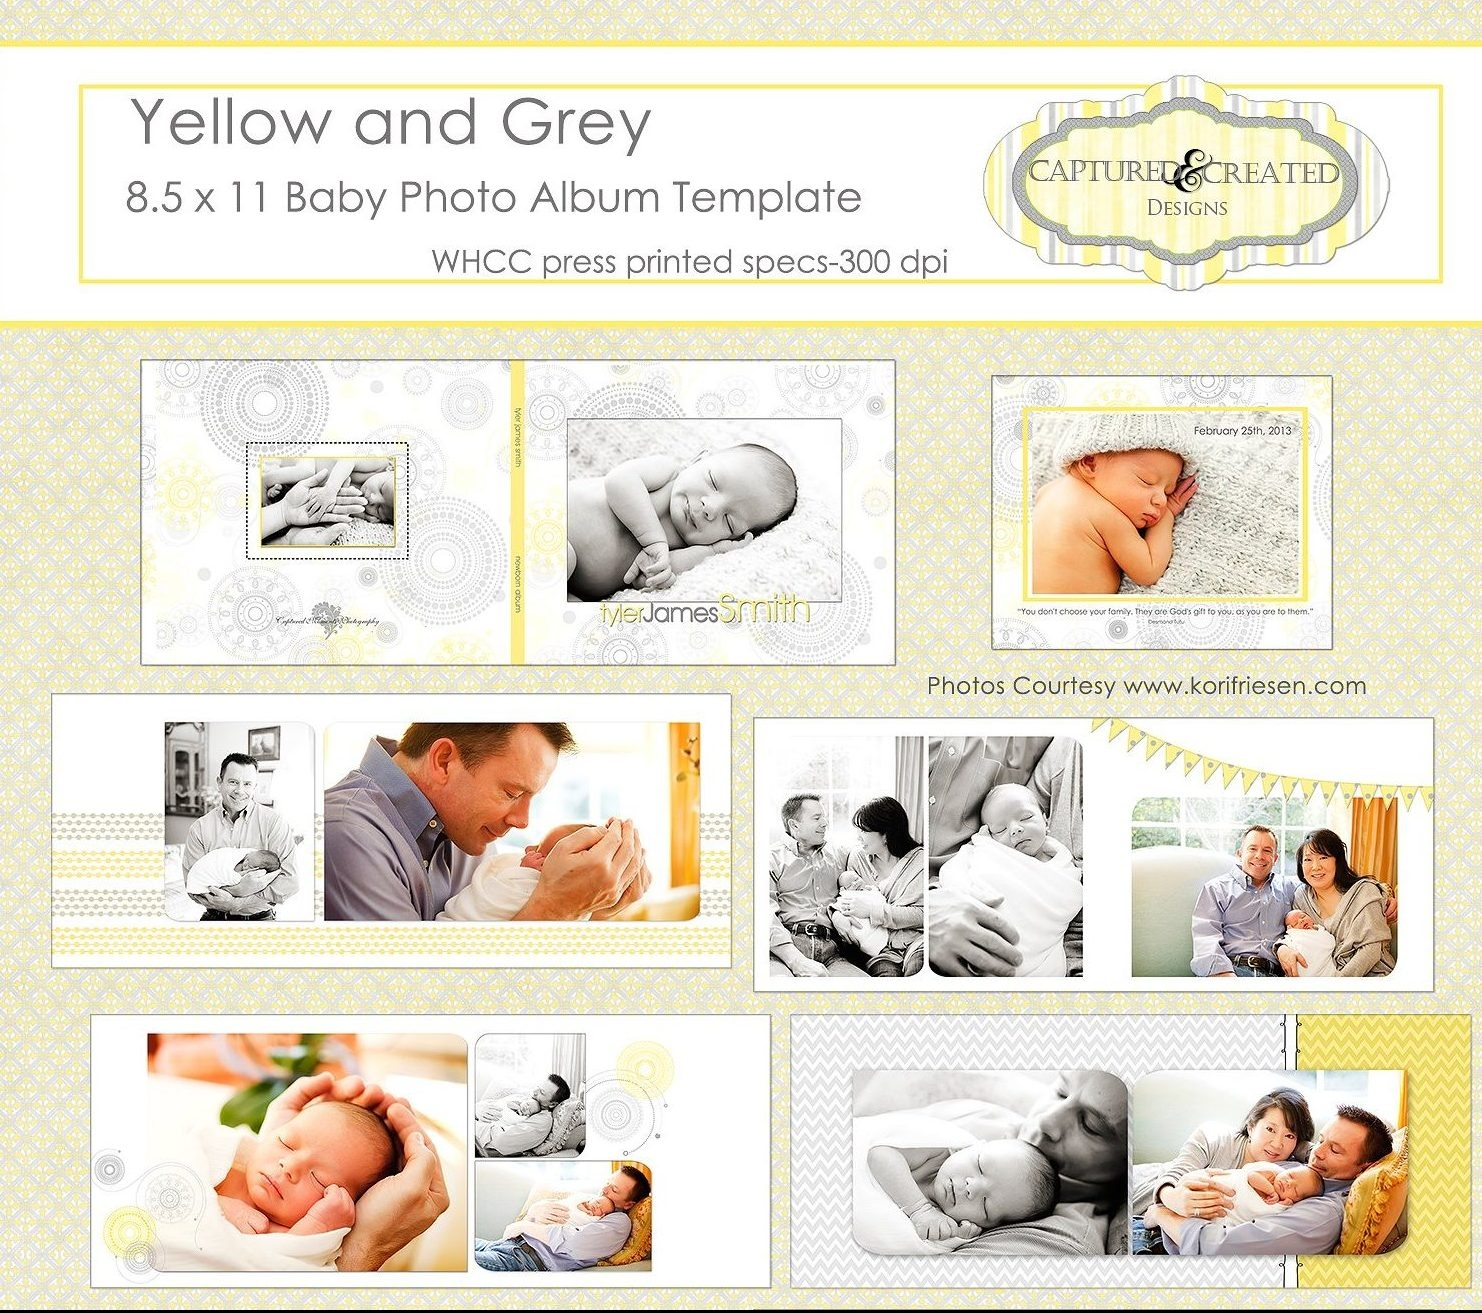 yellow and grey baby photo album template e1503484258384